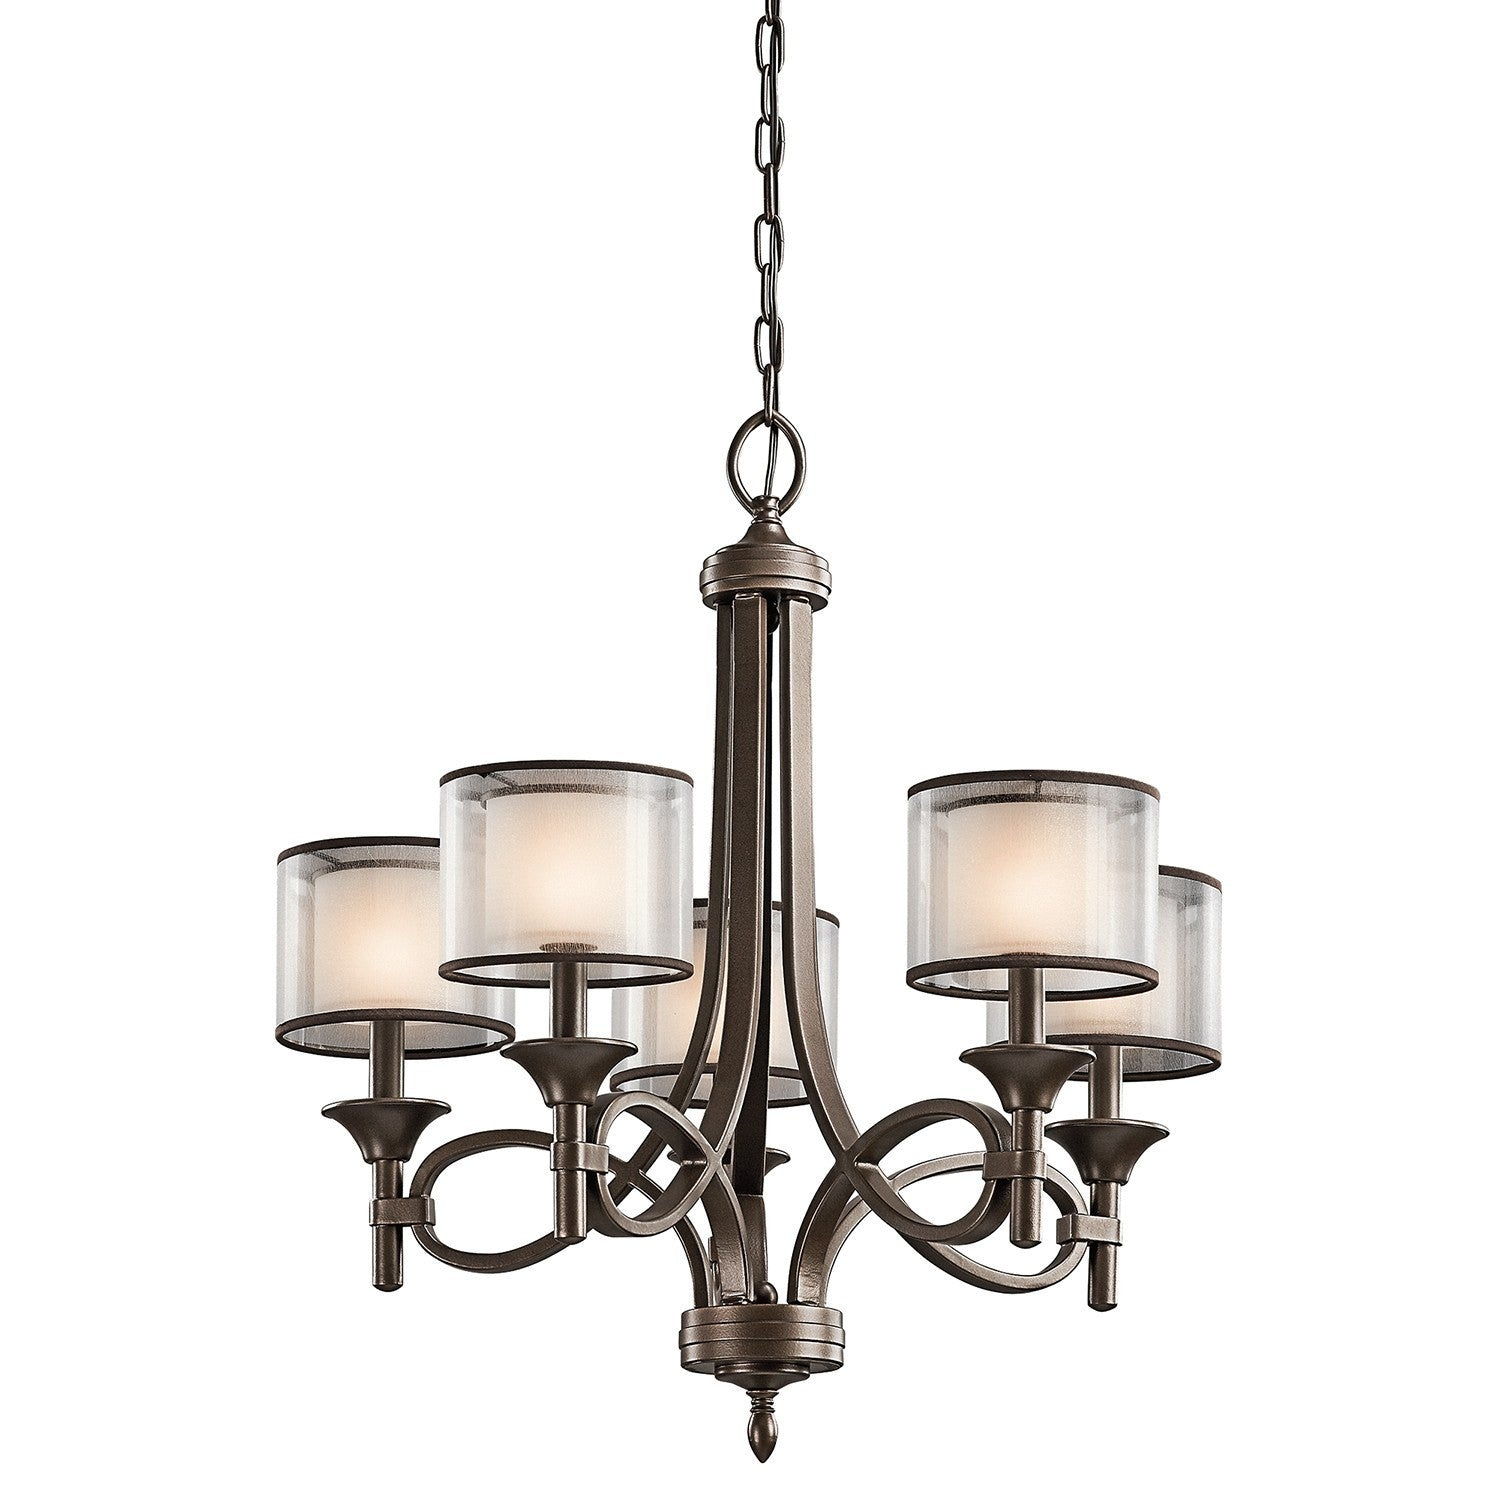 5 light chandelier london lighting kichler lacey 5 light chandelier london lighting 1 aloadofball Choice Image